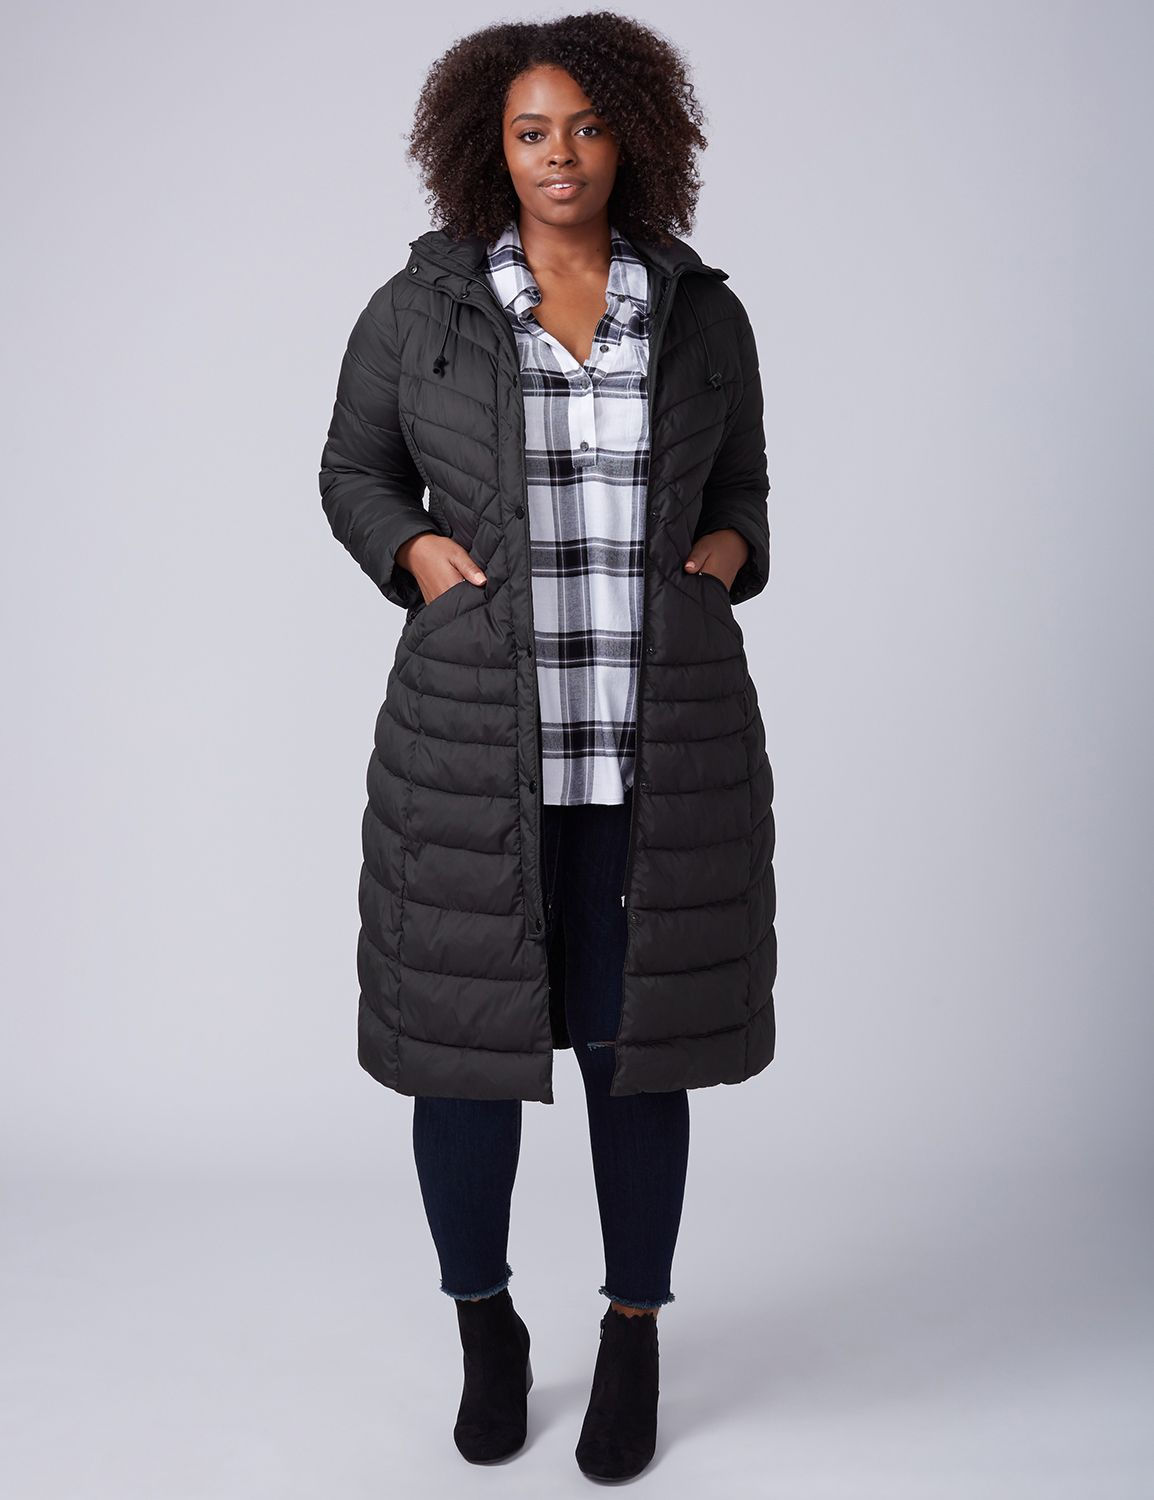 Lane Bryant Women's Maxi Puffer Jacket 26 / 28 Black